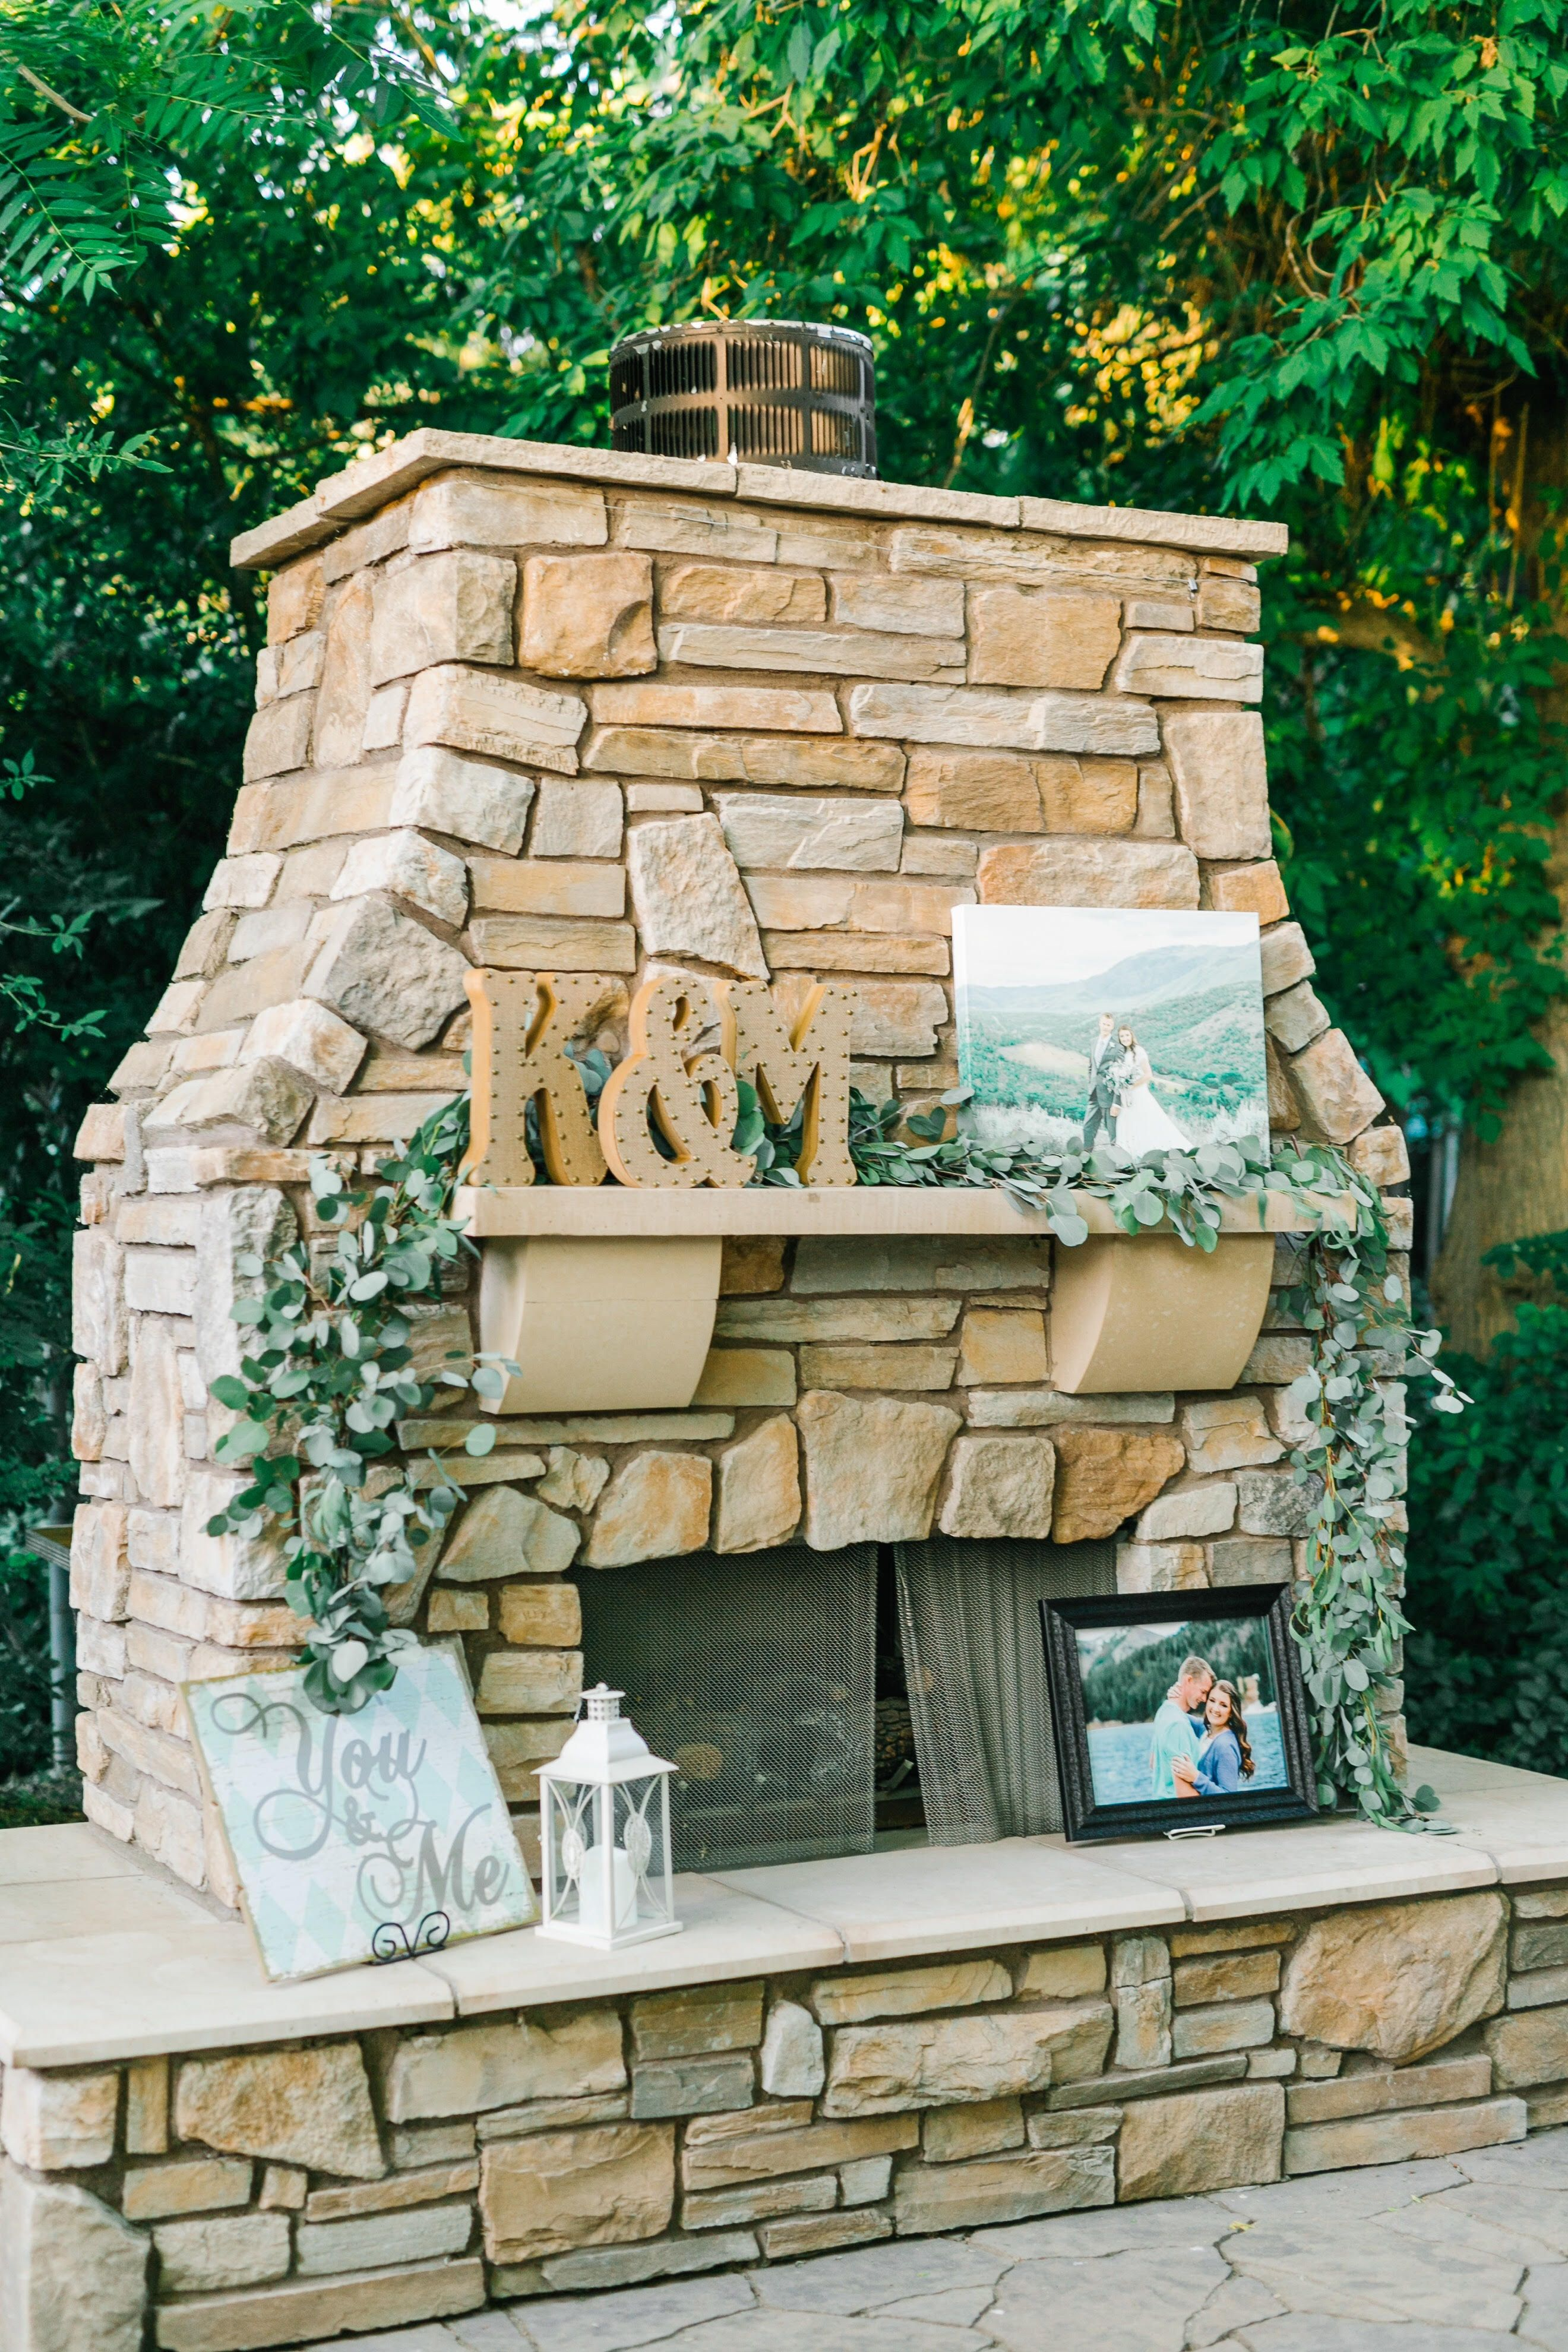 Perfect cozy fireplace for an outdoor wedding eucalyptus